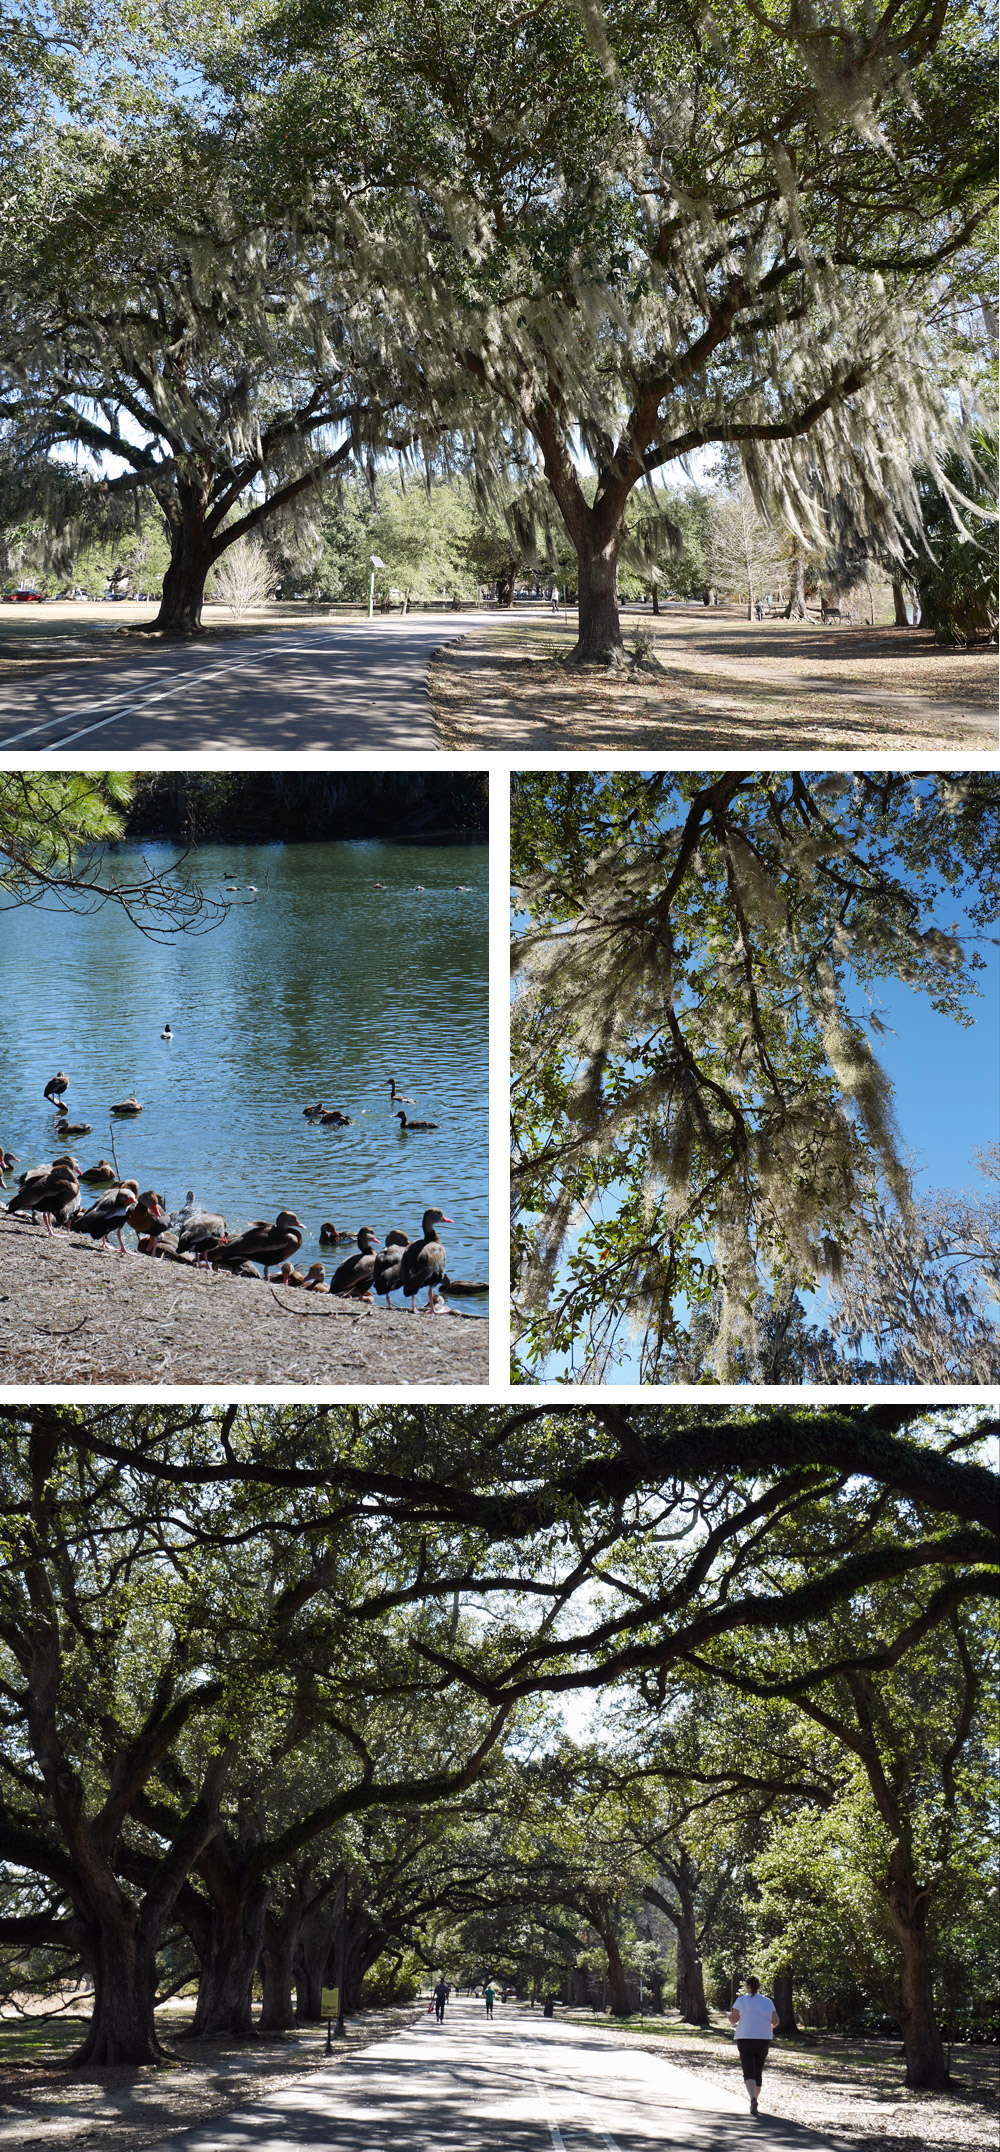 Things To Do in New Orleans: Audubon Park